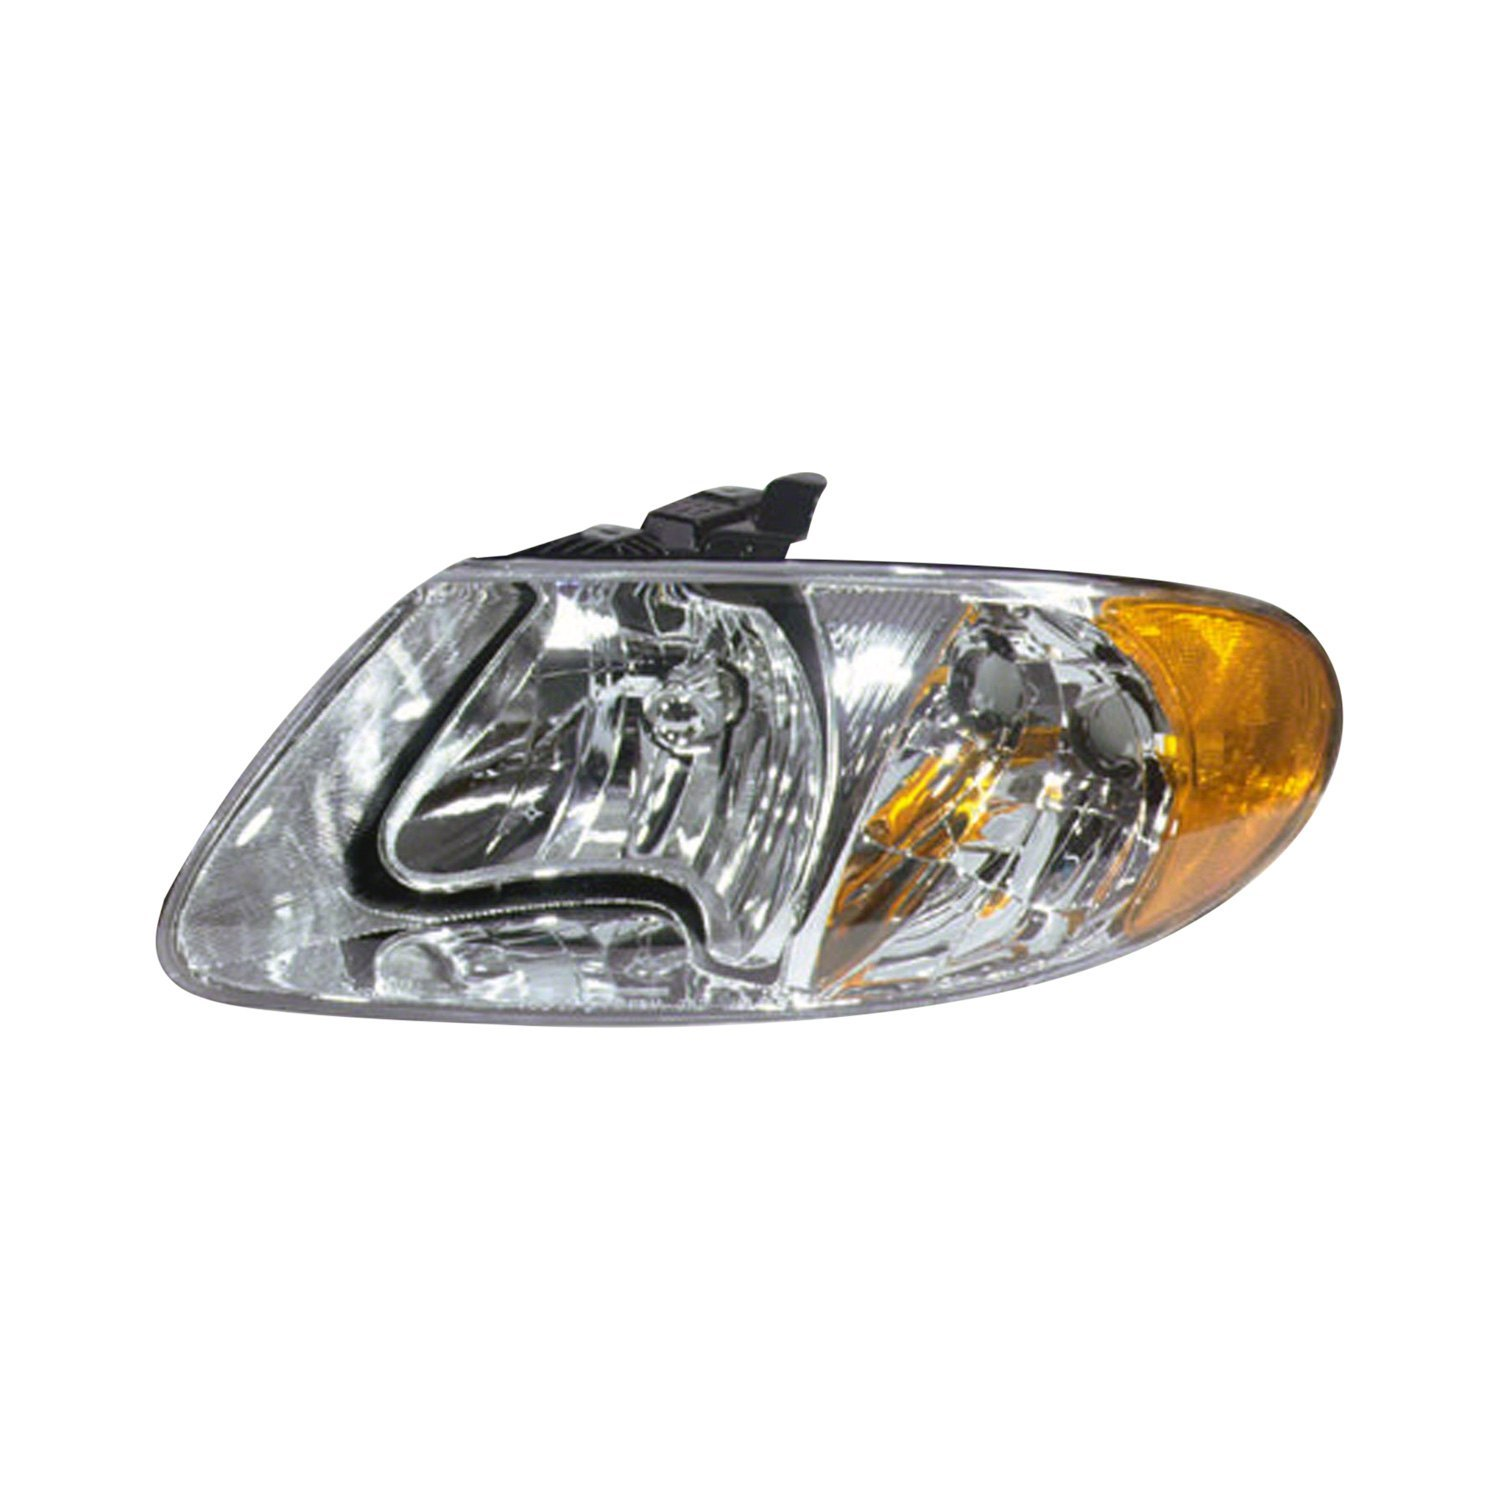 Dodge Replacement Headlights: For Dodge Caravan 2001-2007 Replace CH2502129V Driver Side